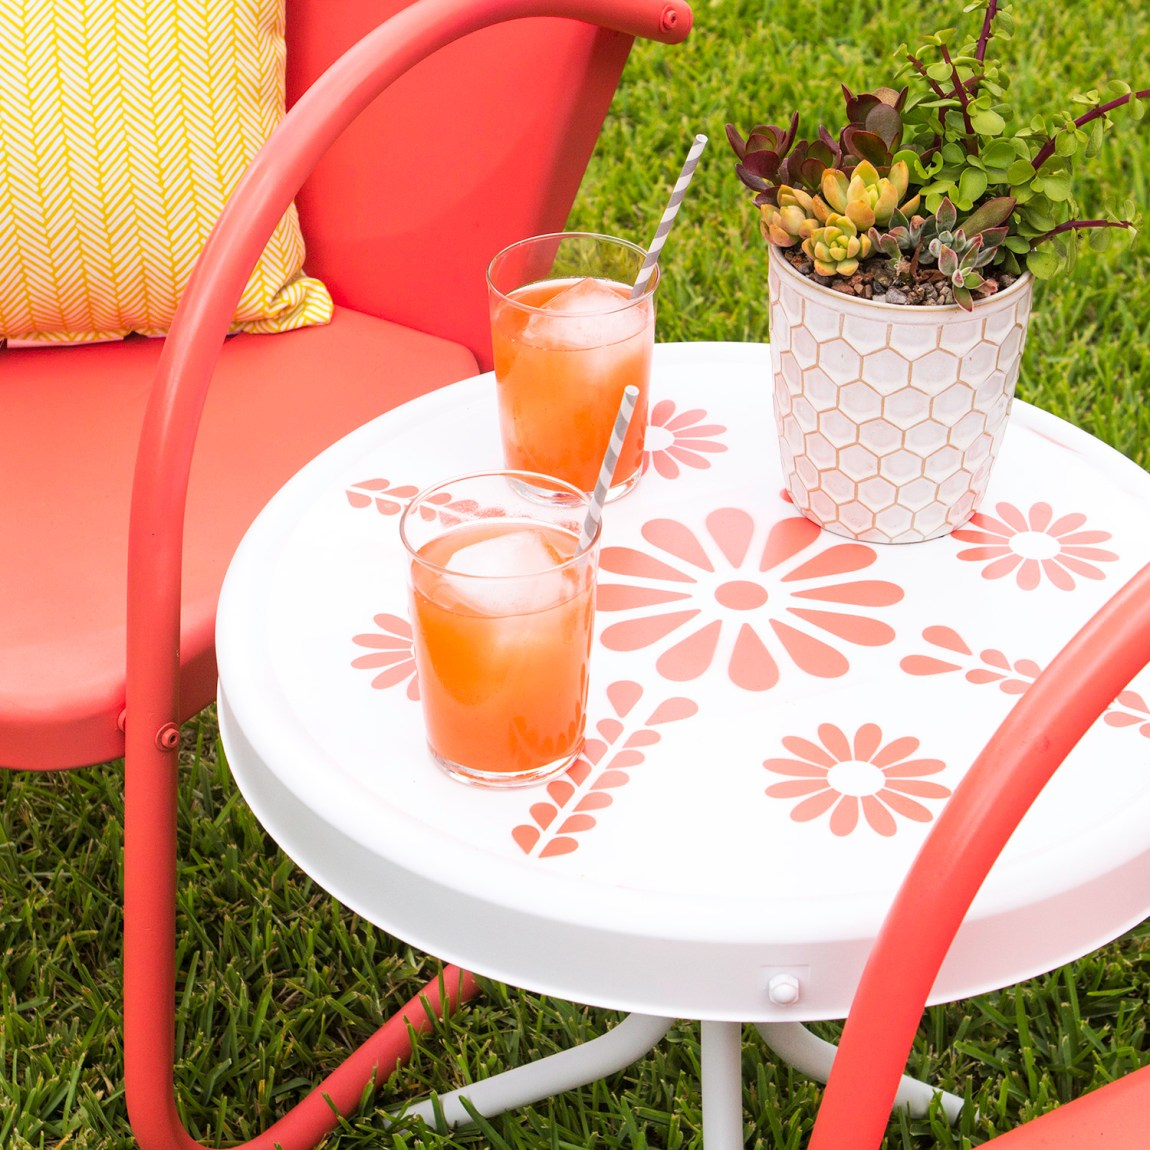 Love this stenciled patio side table with daisies on it. Such a cure way to add a pop of color to the patio!